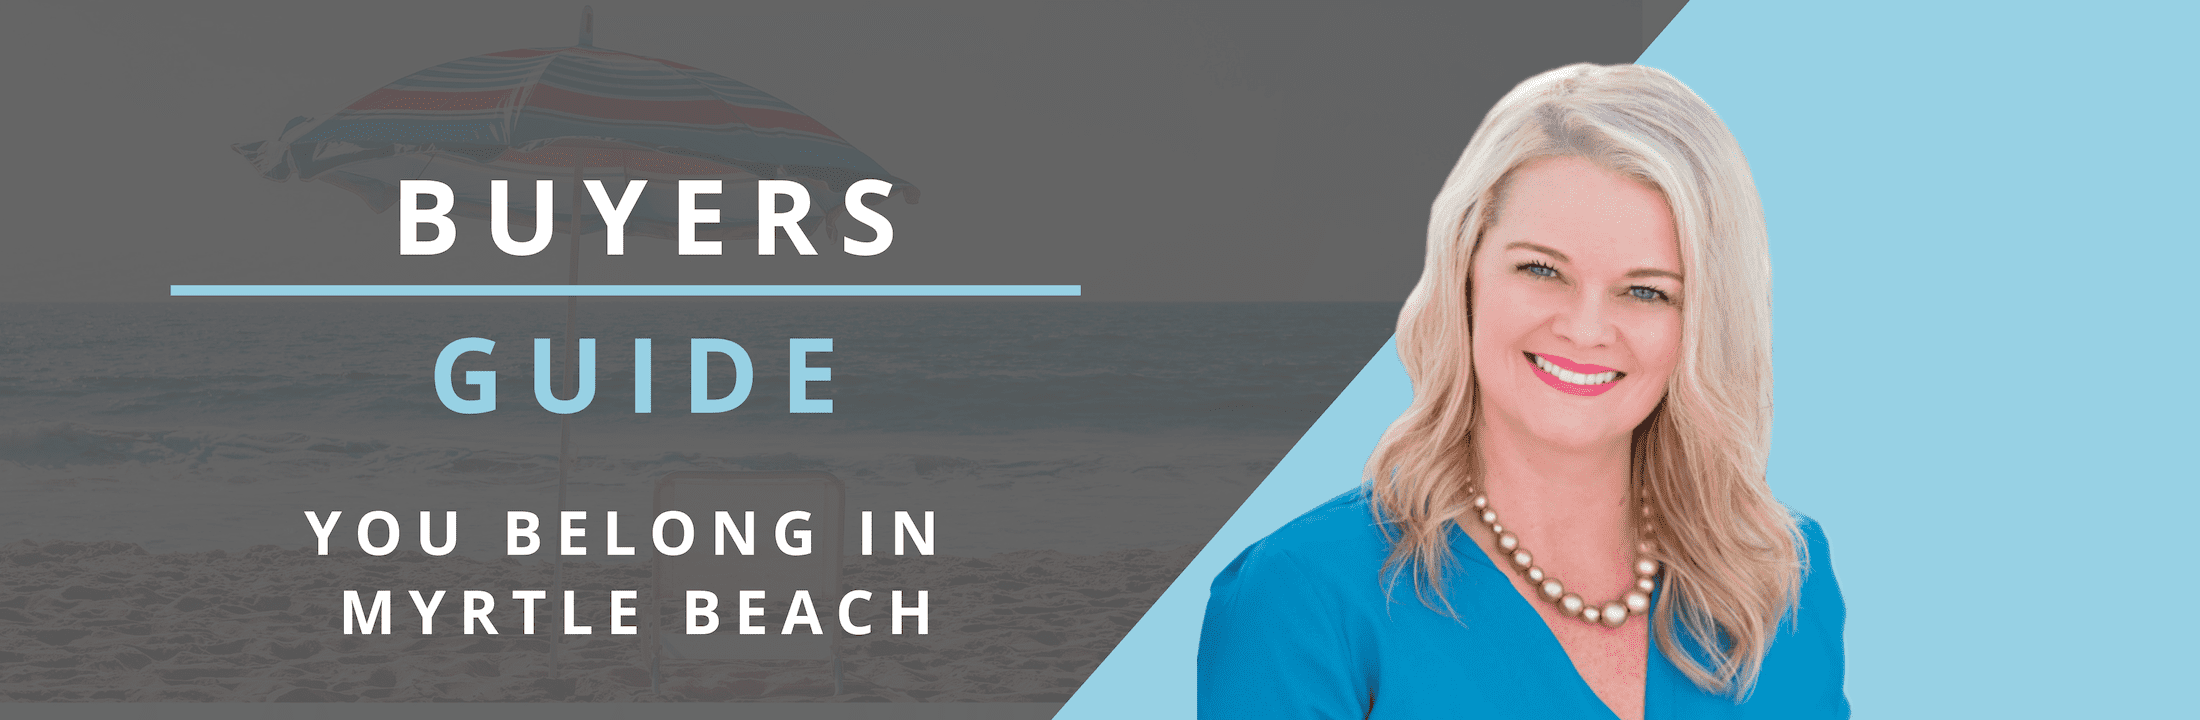 Buying a home in Myrtle Beach, SC